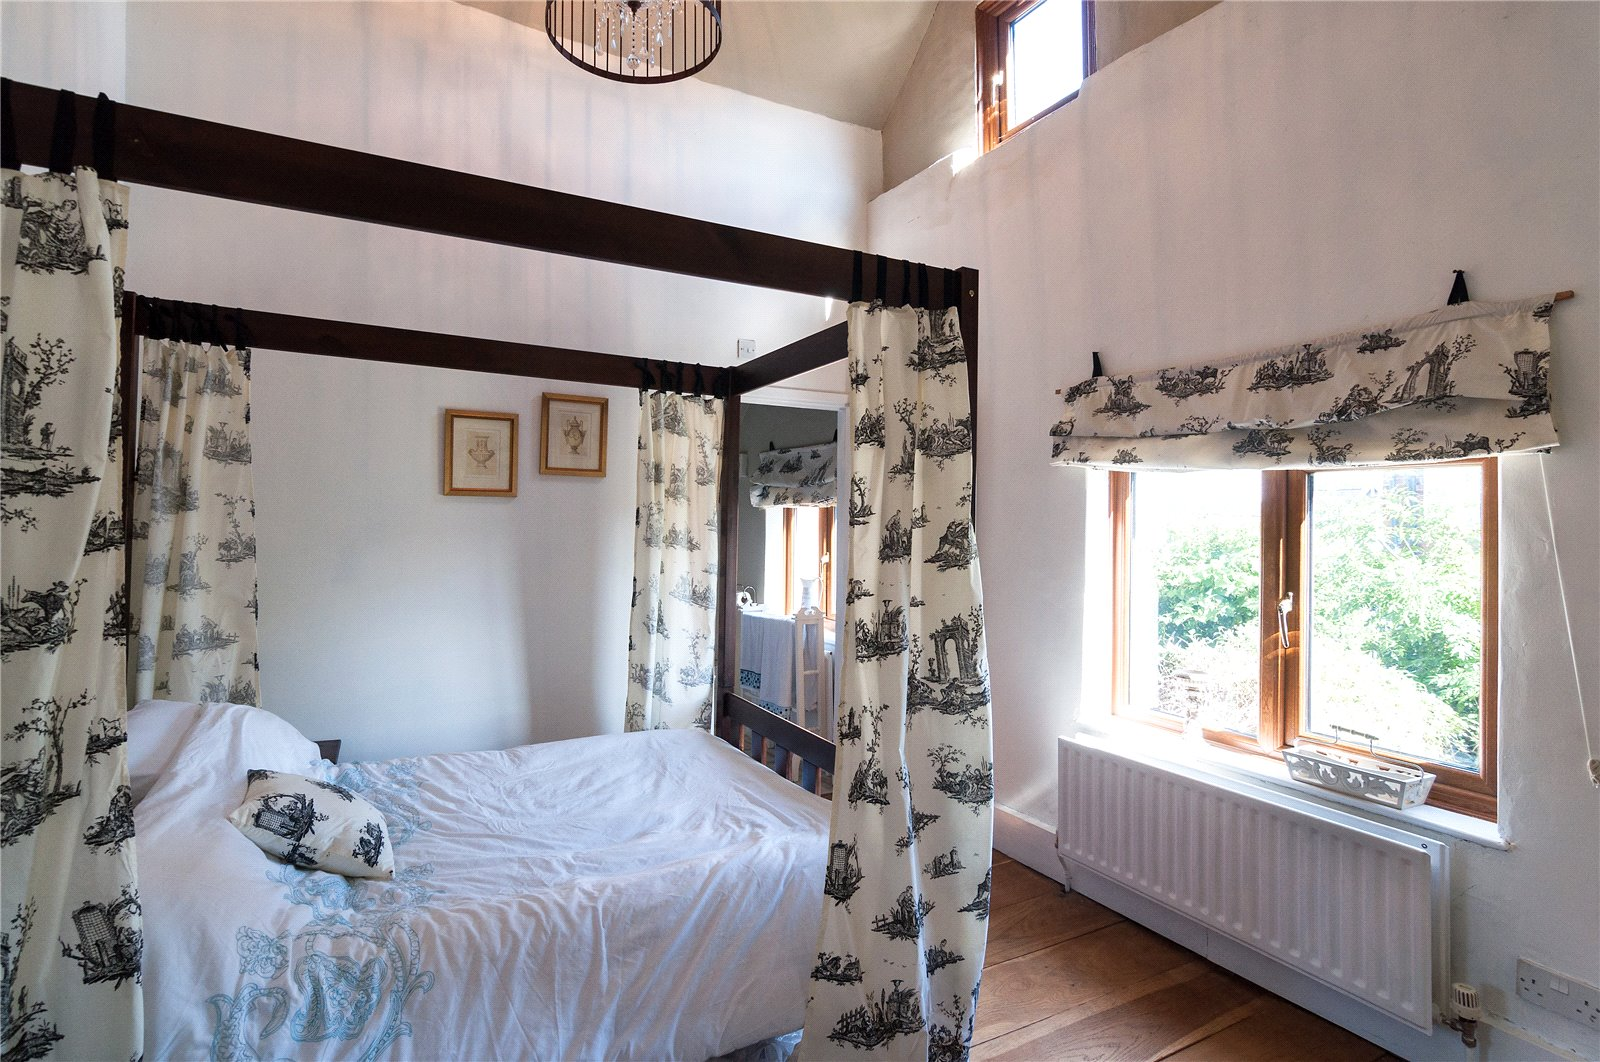 Emily Place, 69 Lower Galdeford, Ludlow, Shropshire, SY8